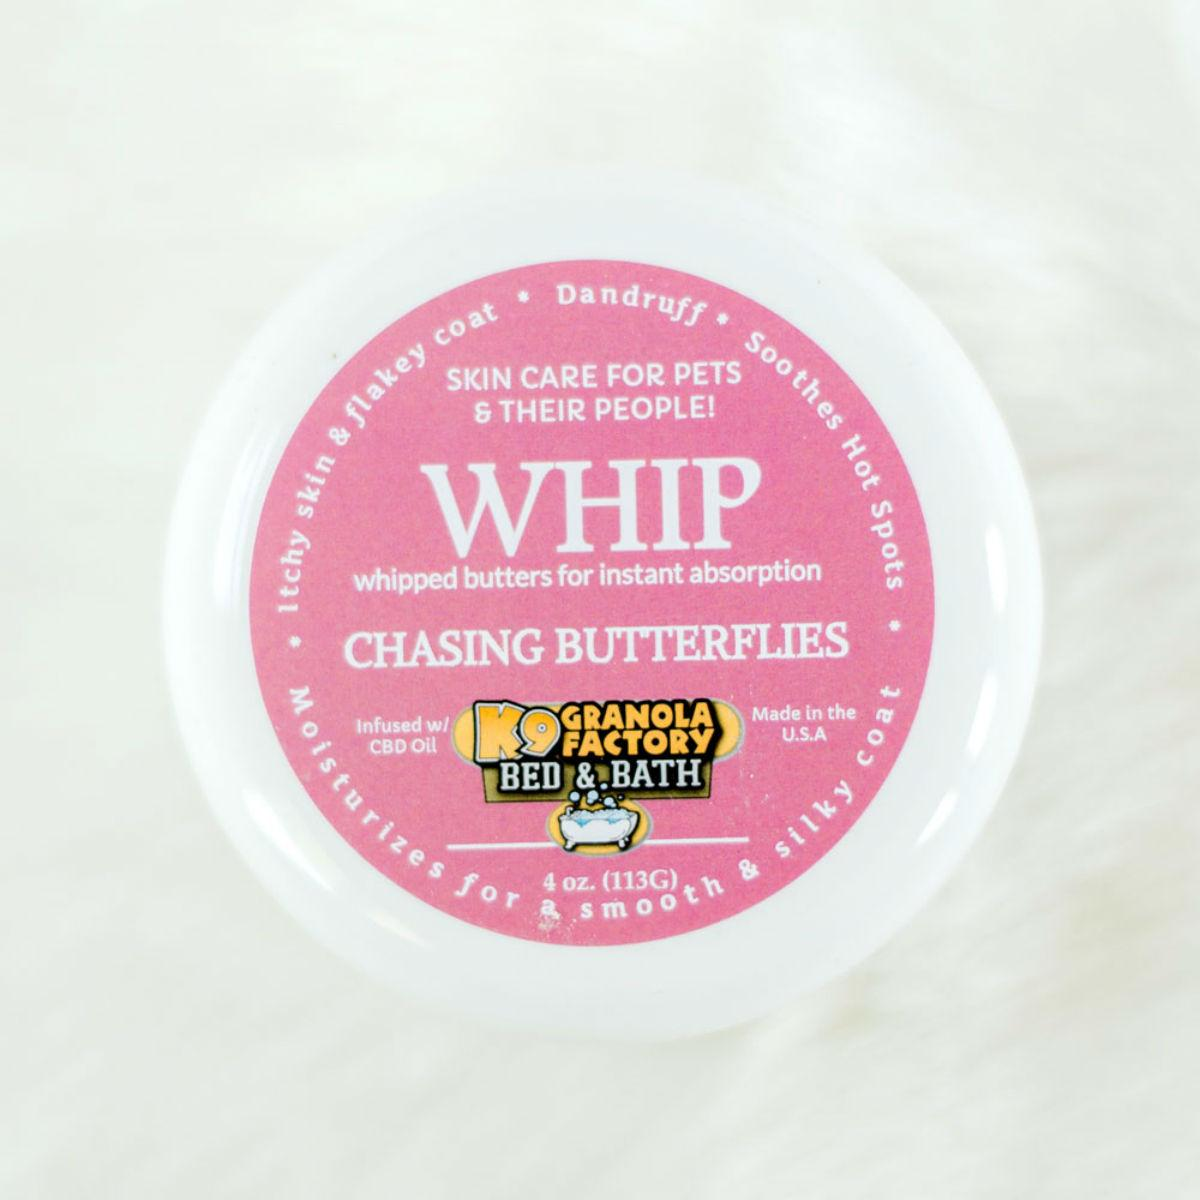 K9 Granola Factory WHIP Body Butter Dog Moisturizer - Chasing Butterflies